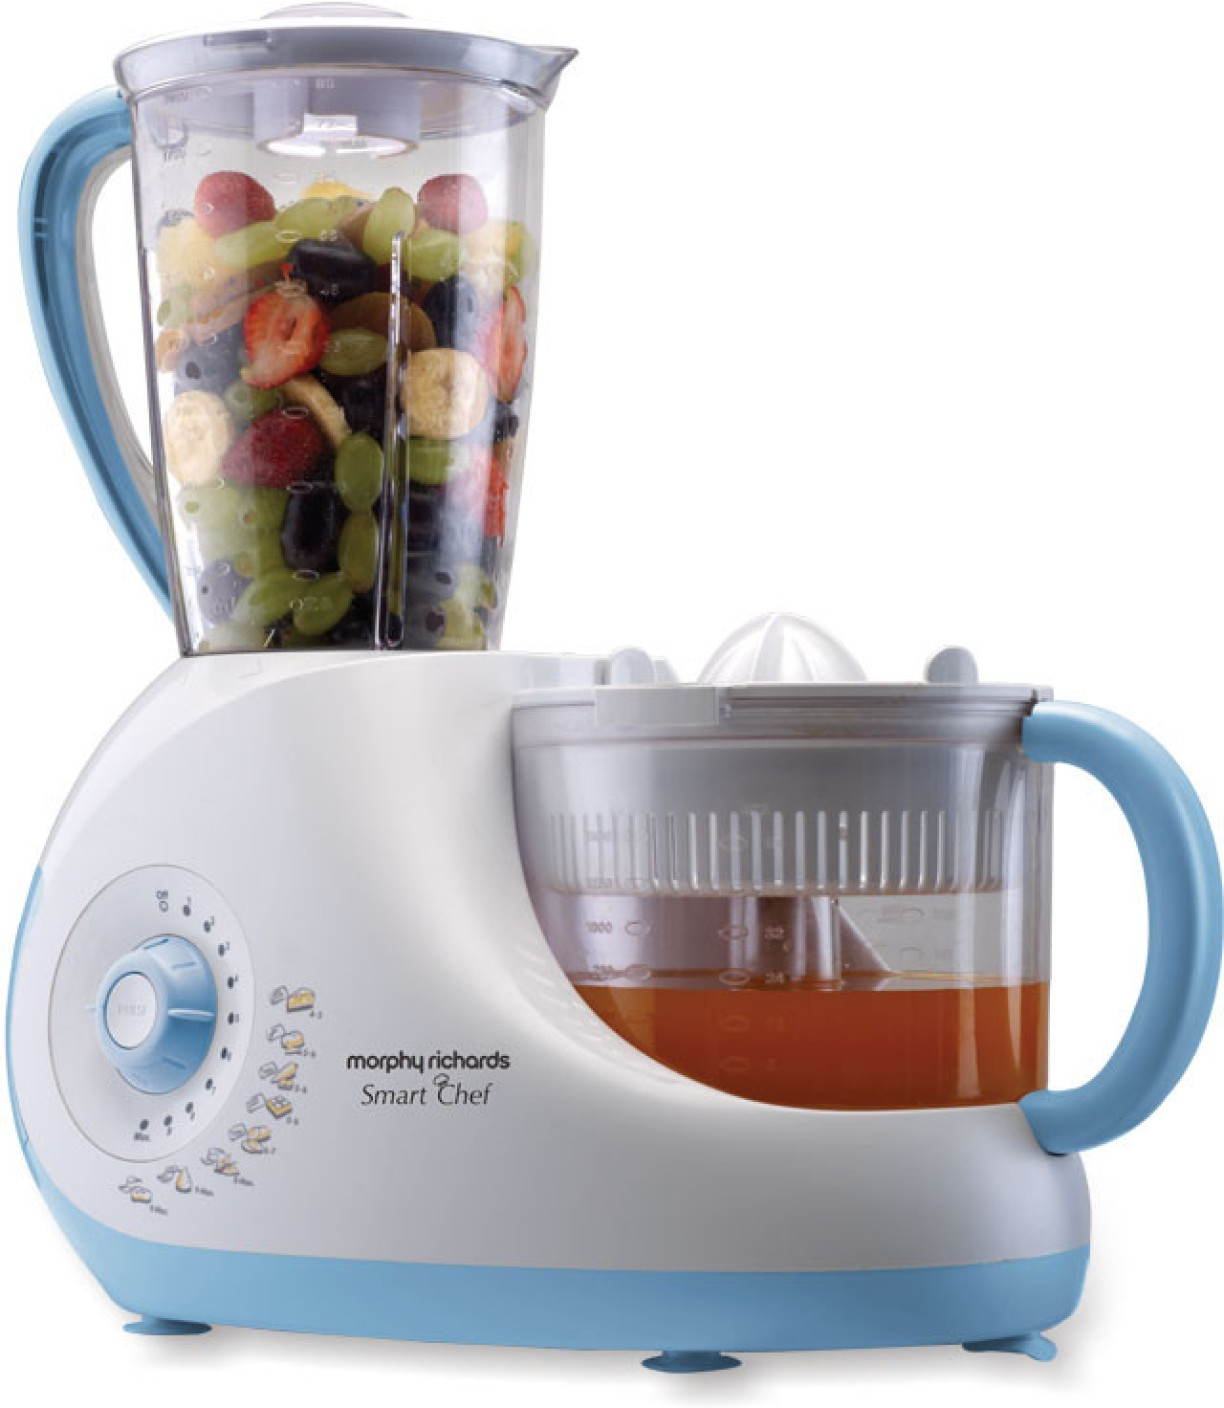 Morphy Richards India: Morphy Richards Smart Chef 1000 W Food Processor Price In